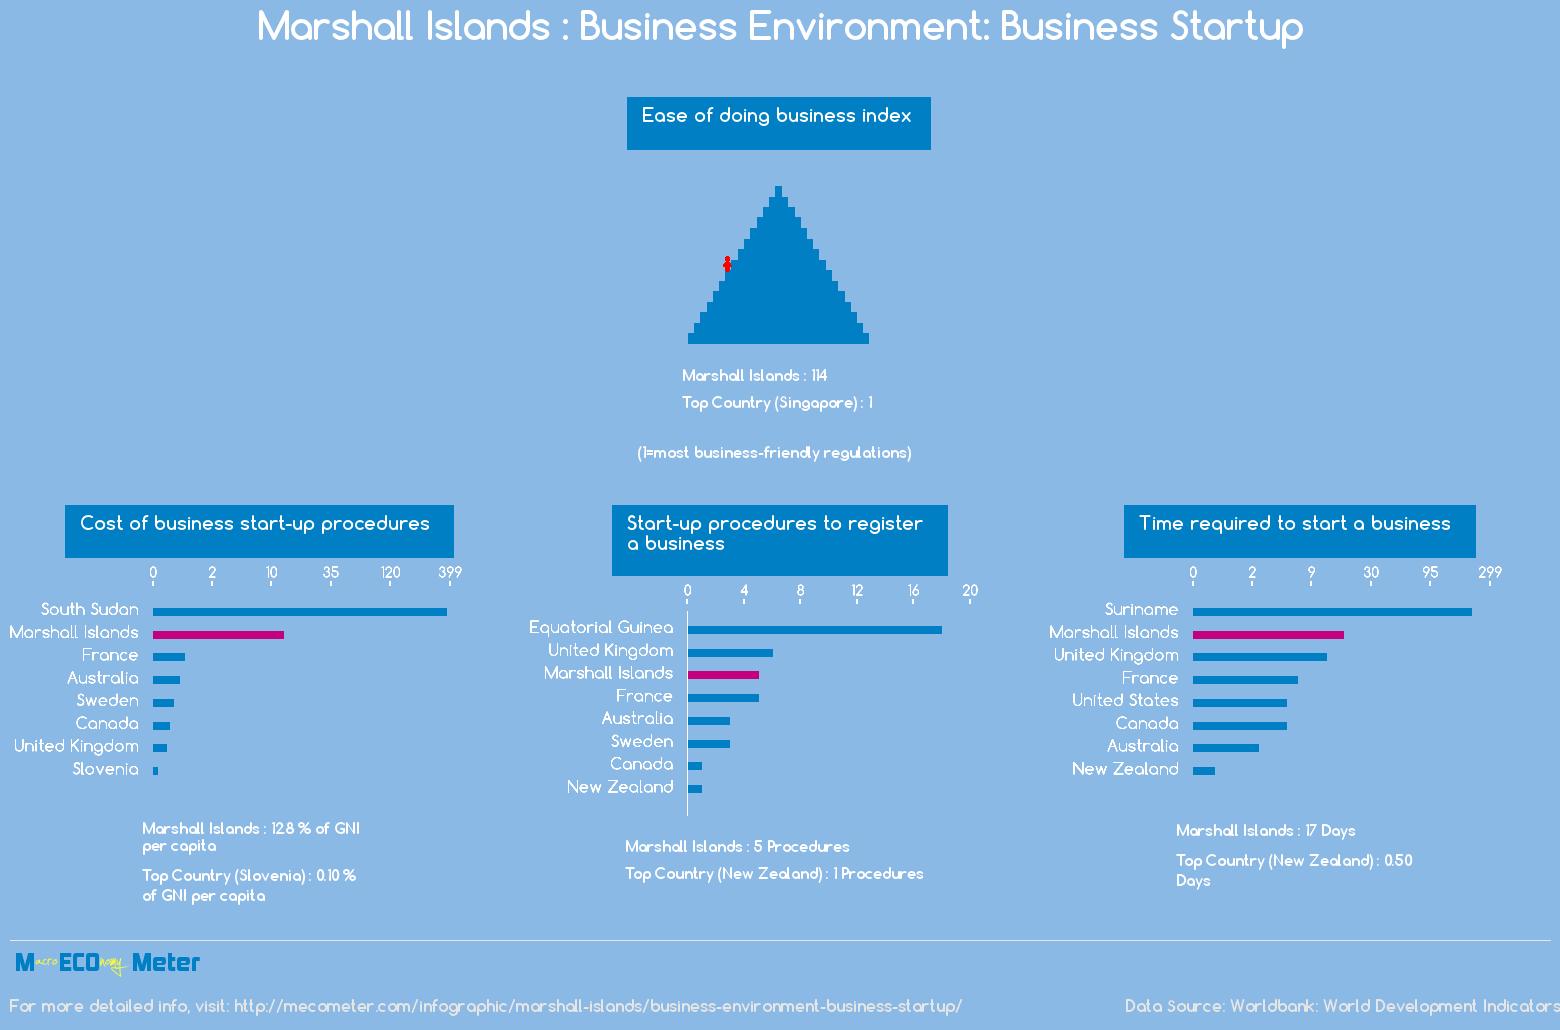 Marshall Islands : Business Environment: Business Startup